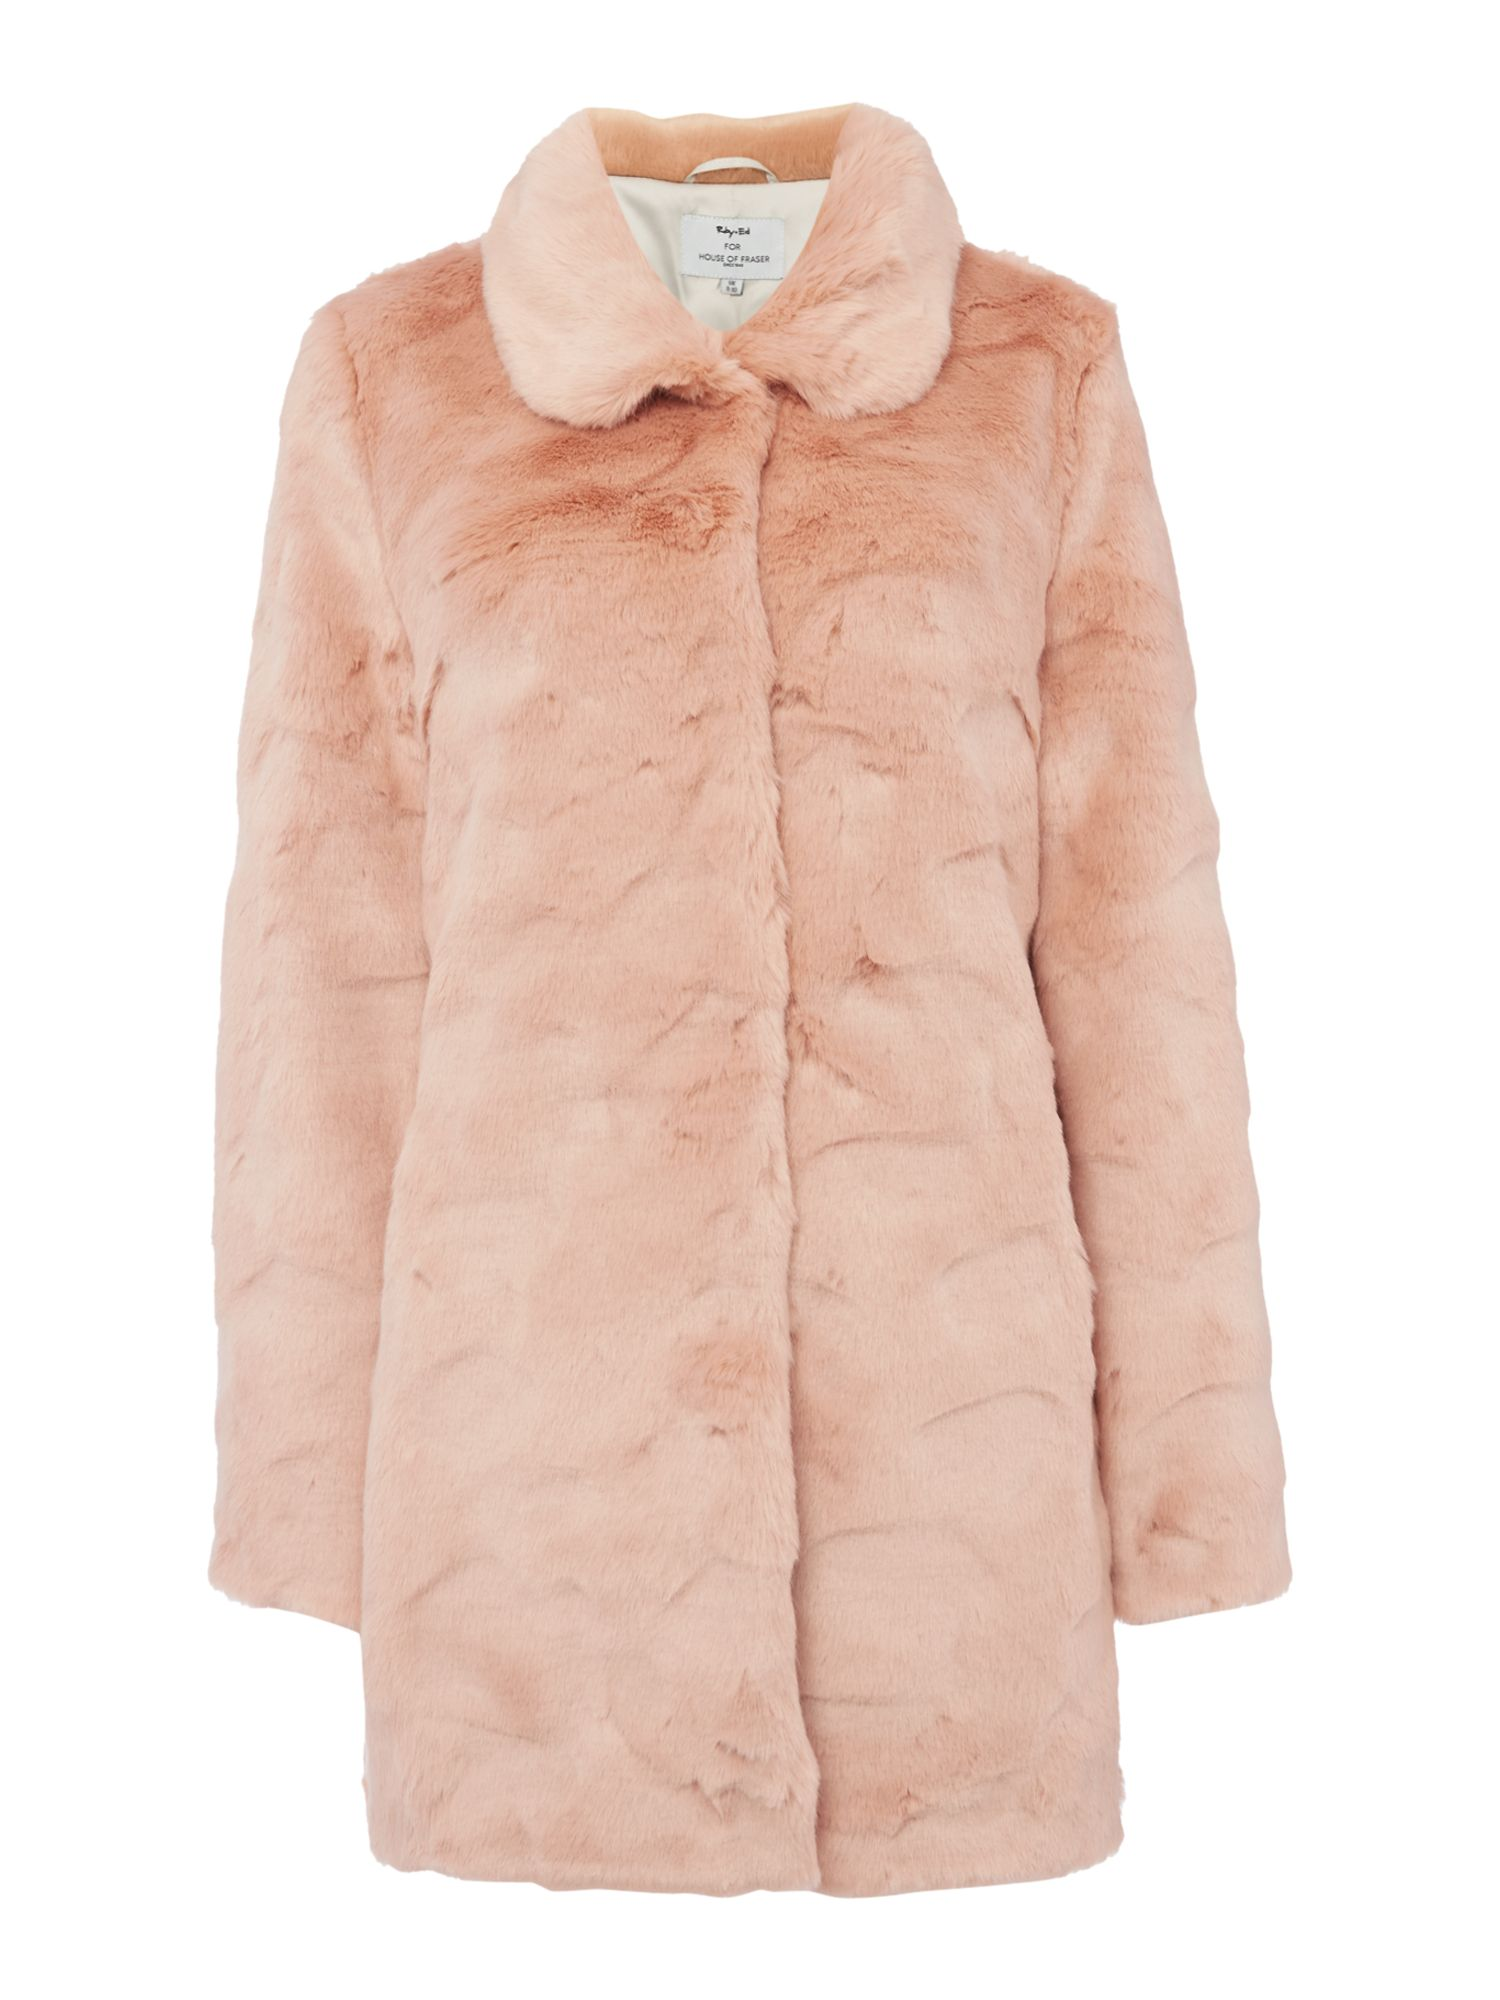 Ruby + Ed Faux Fur Collar Coat, Pink